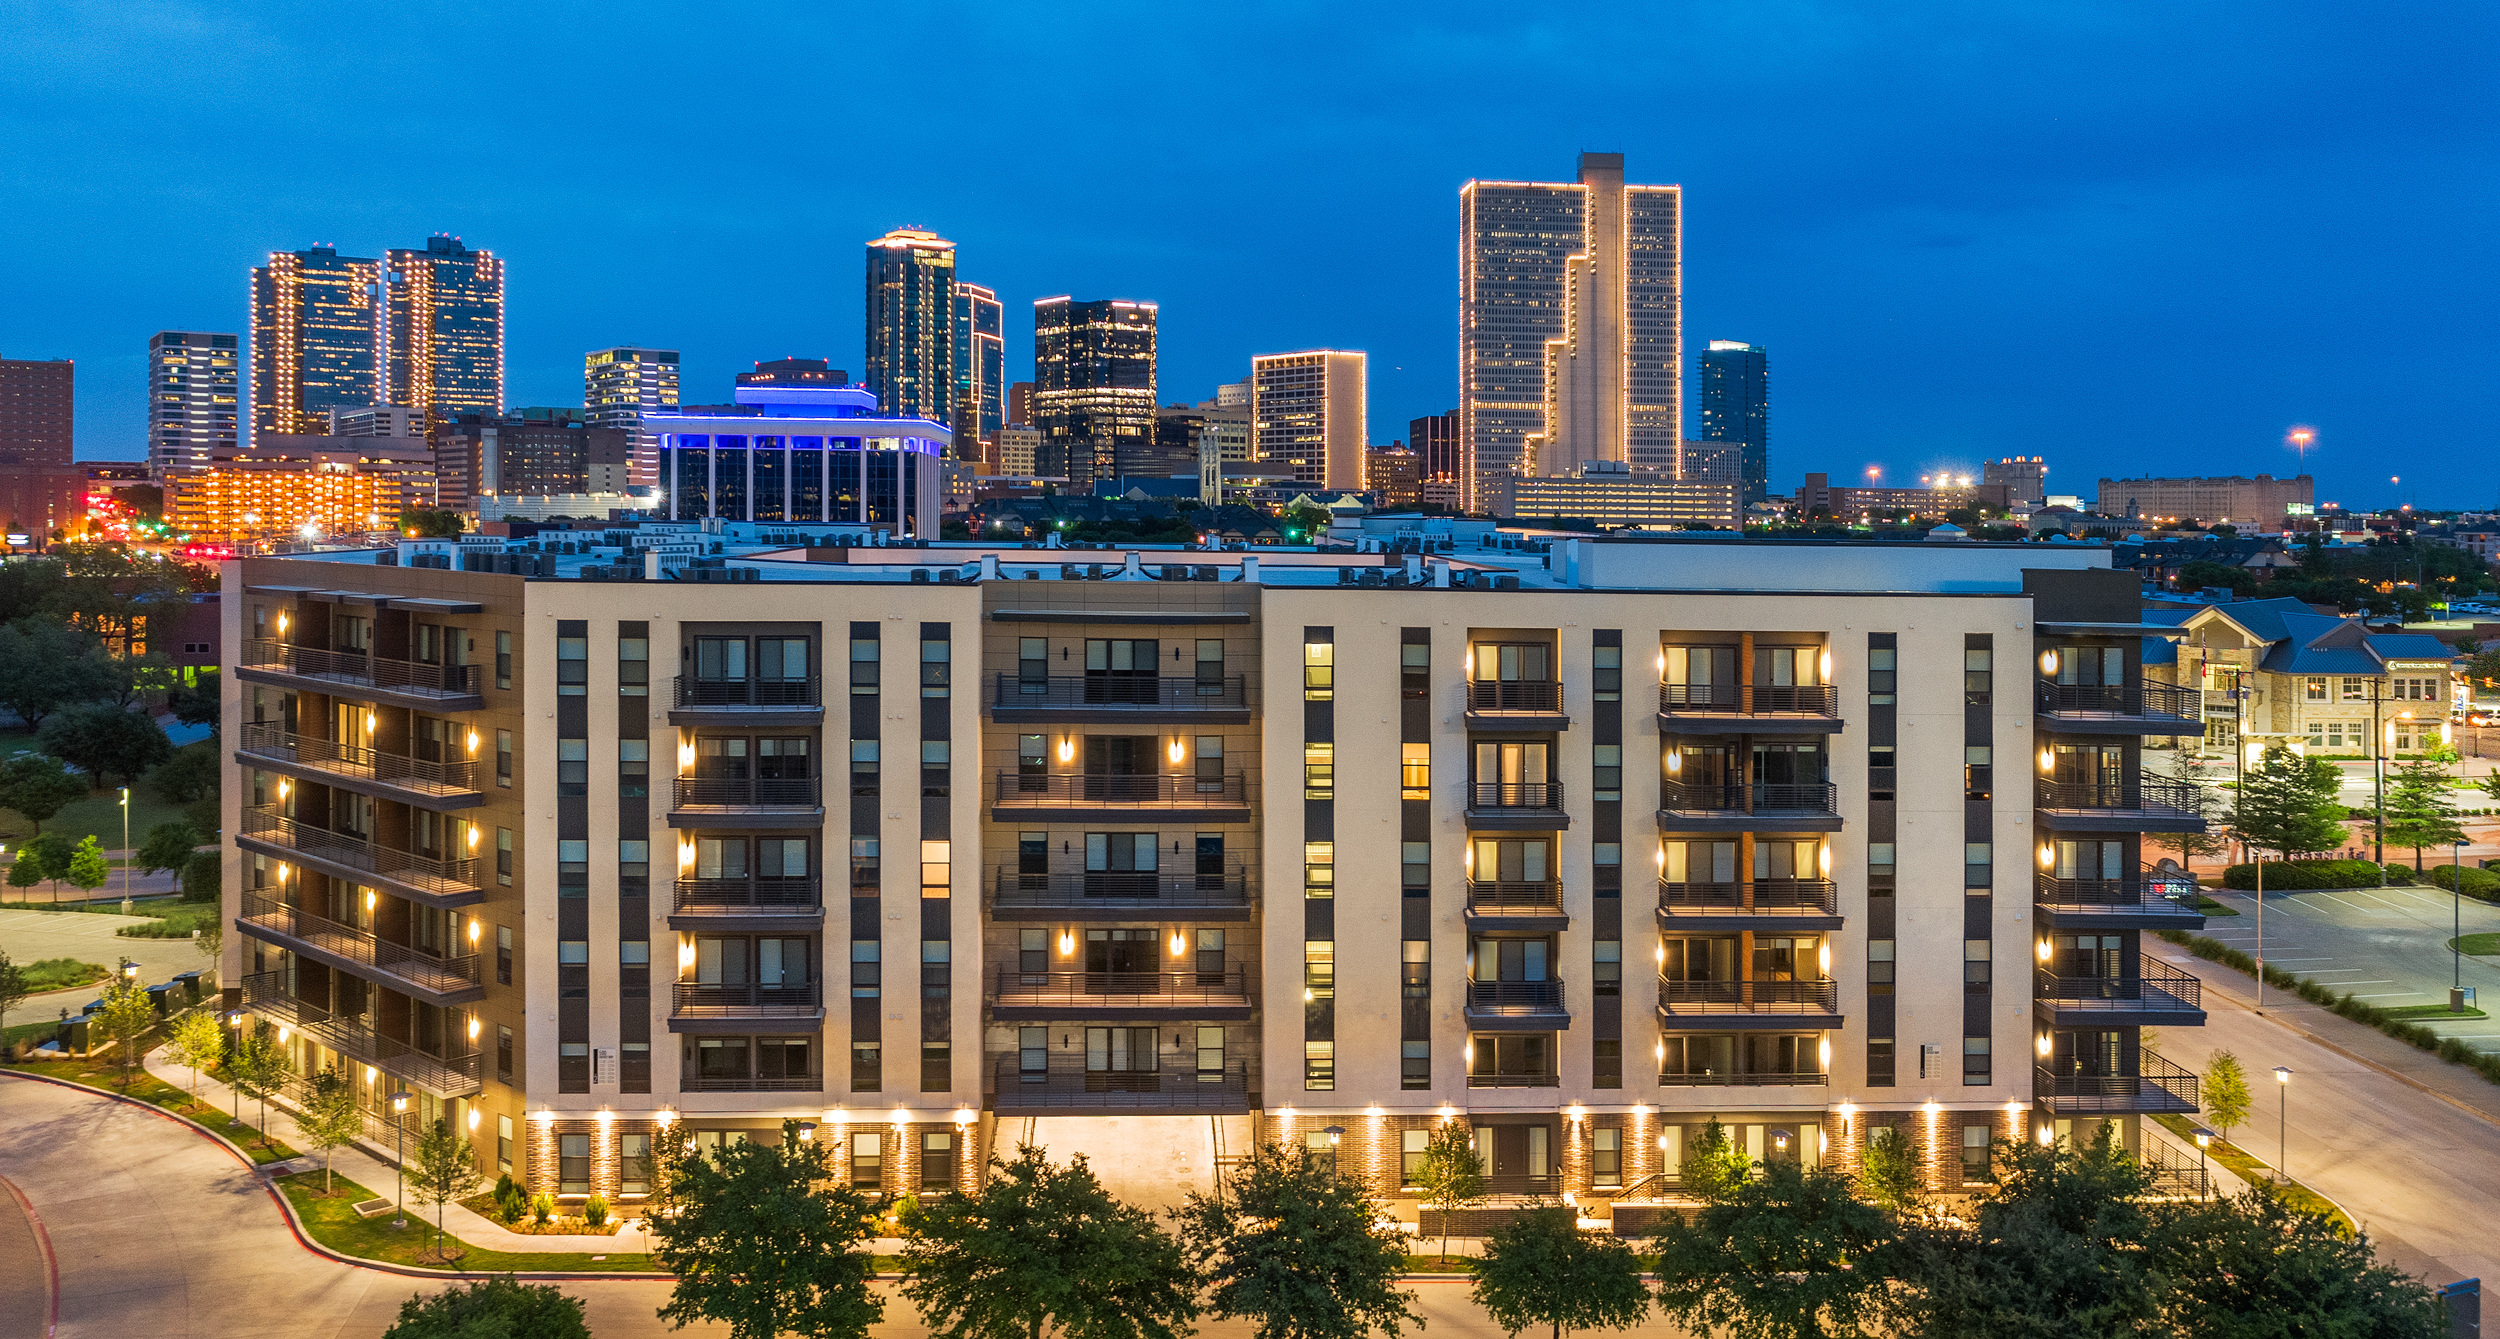 Drone photography of a multifamily building in Fort Worth, Texas.